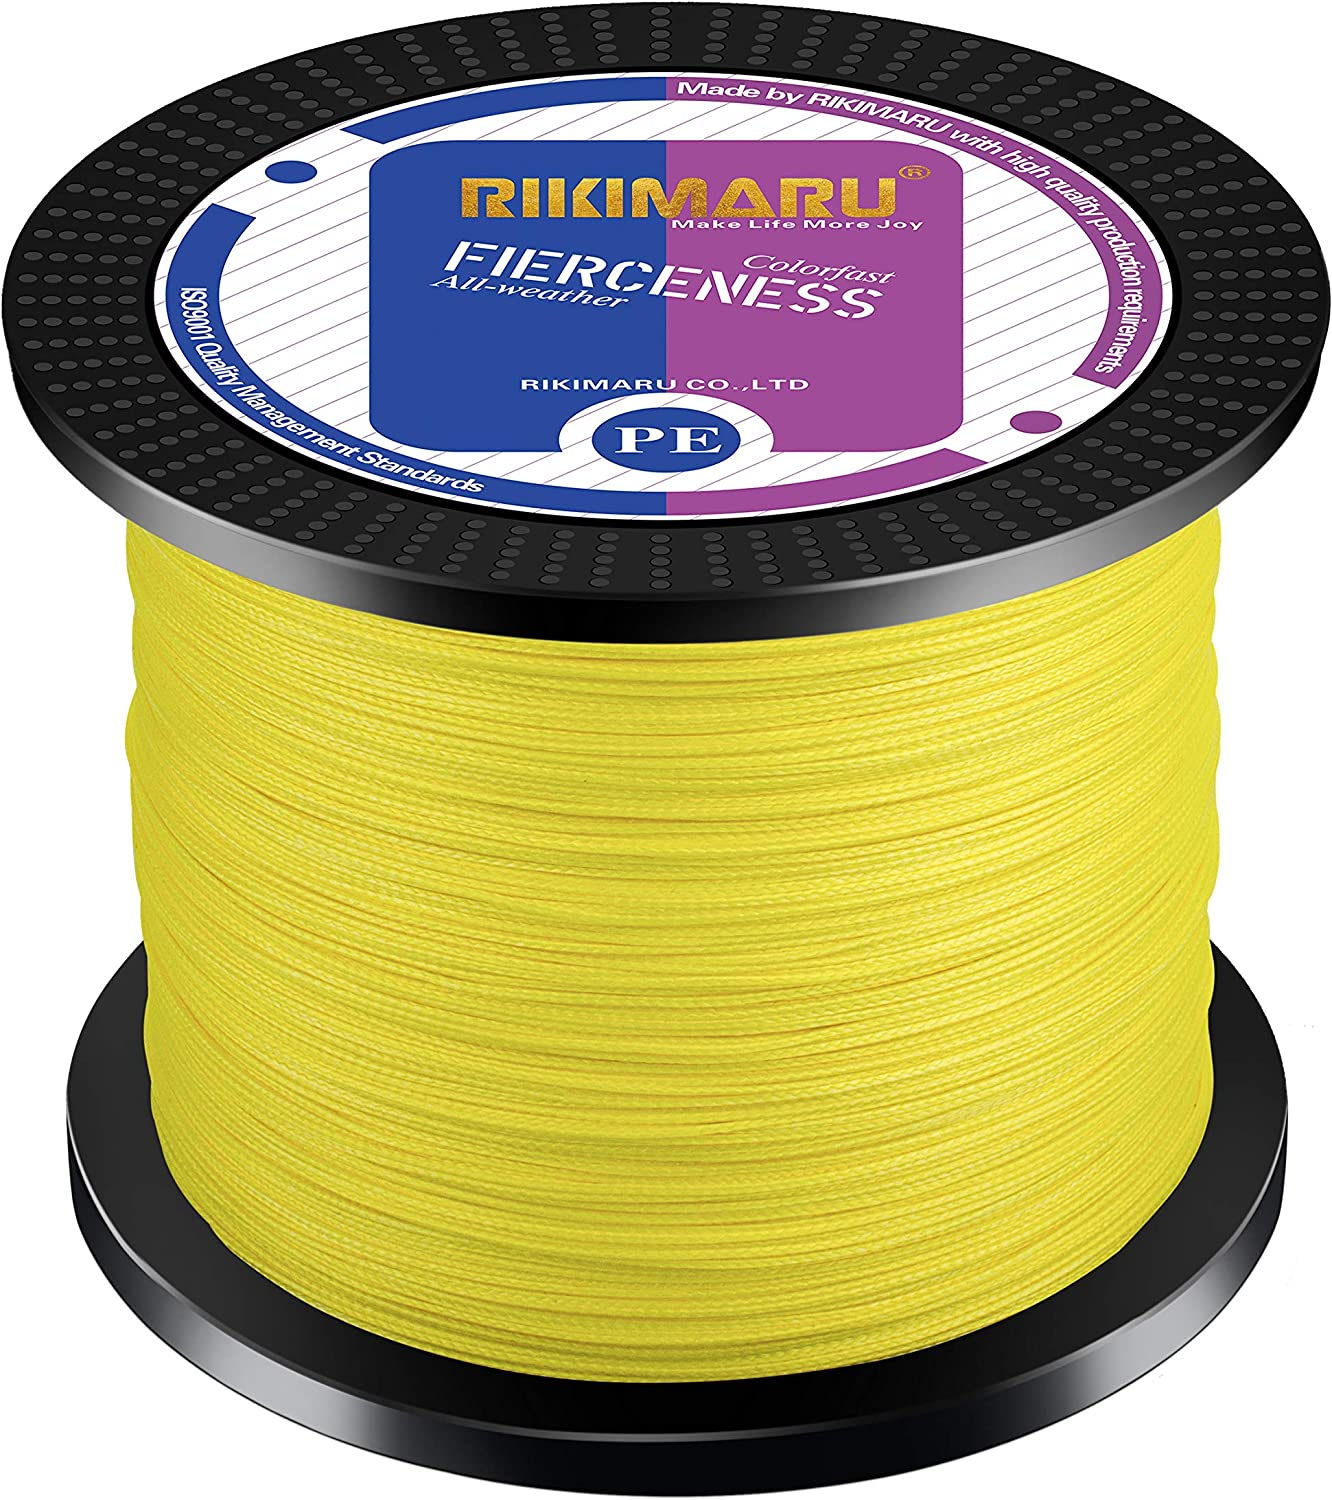 RIKIMARU Braided Fishing Line Abrasion Resistant Superline Zero Stretch Low Memory Extra Thin Diameter 327-1094 Yds, 4-180LB